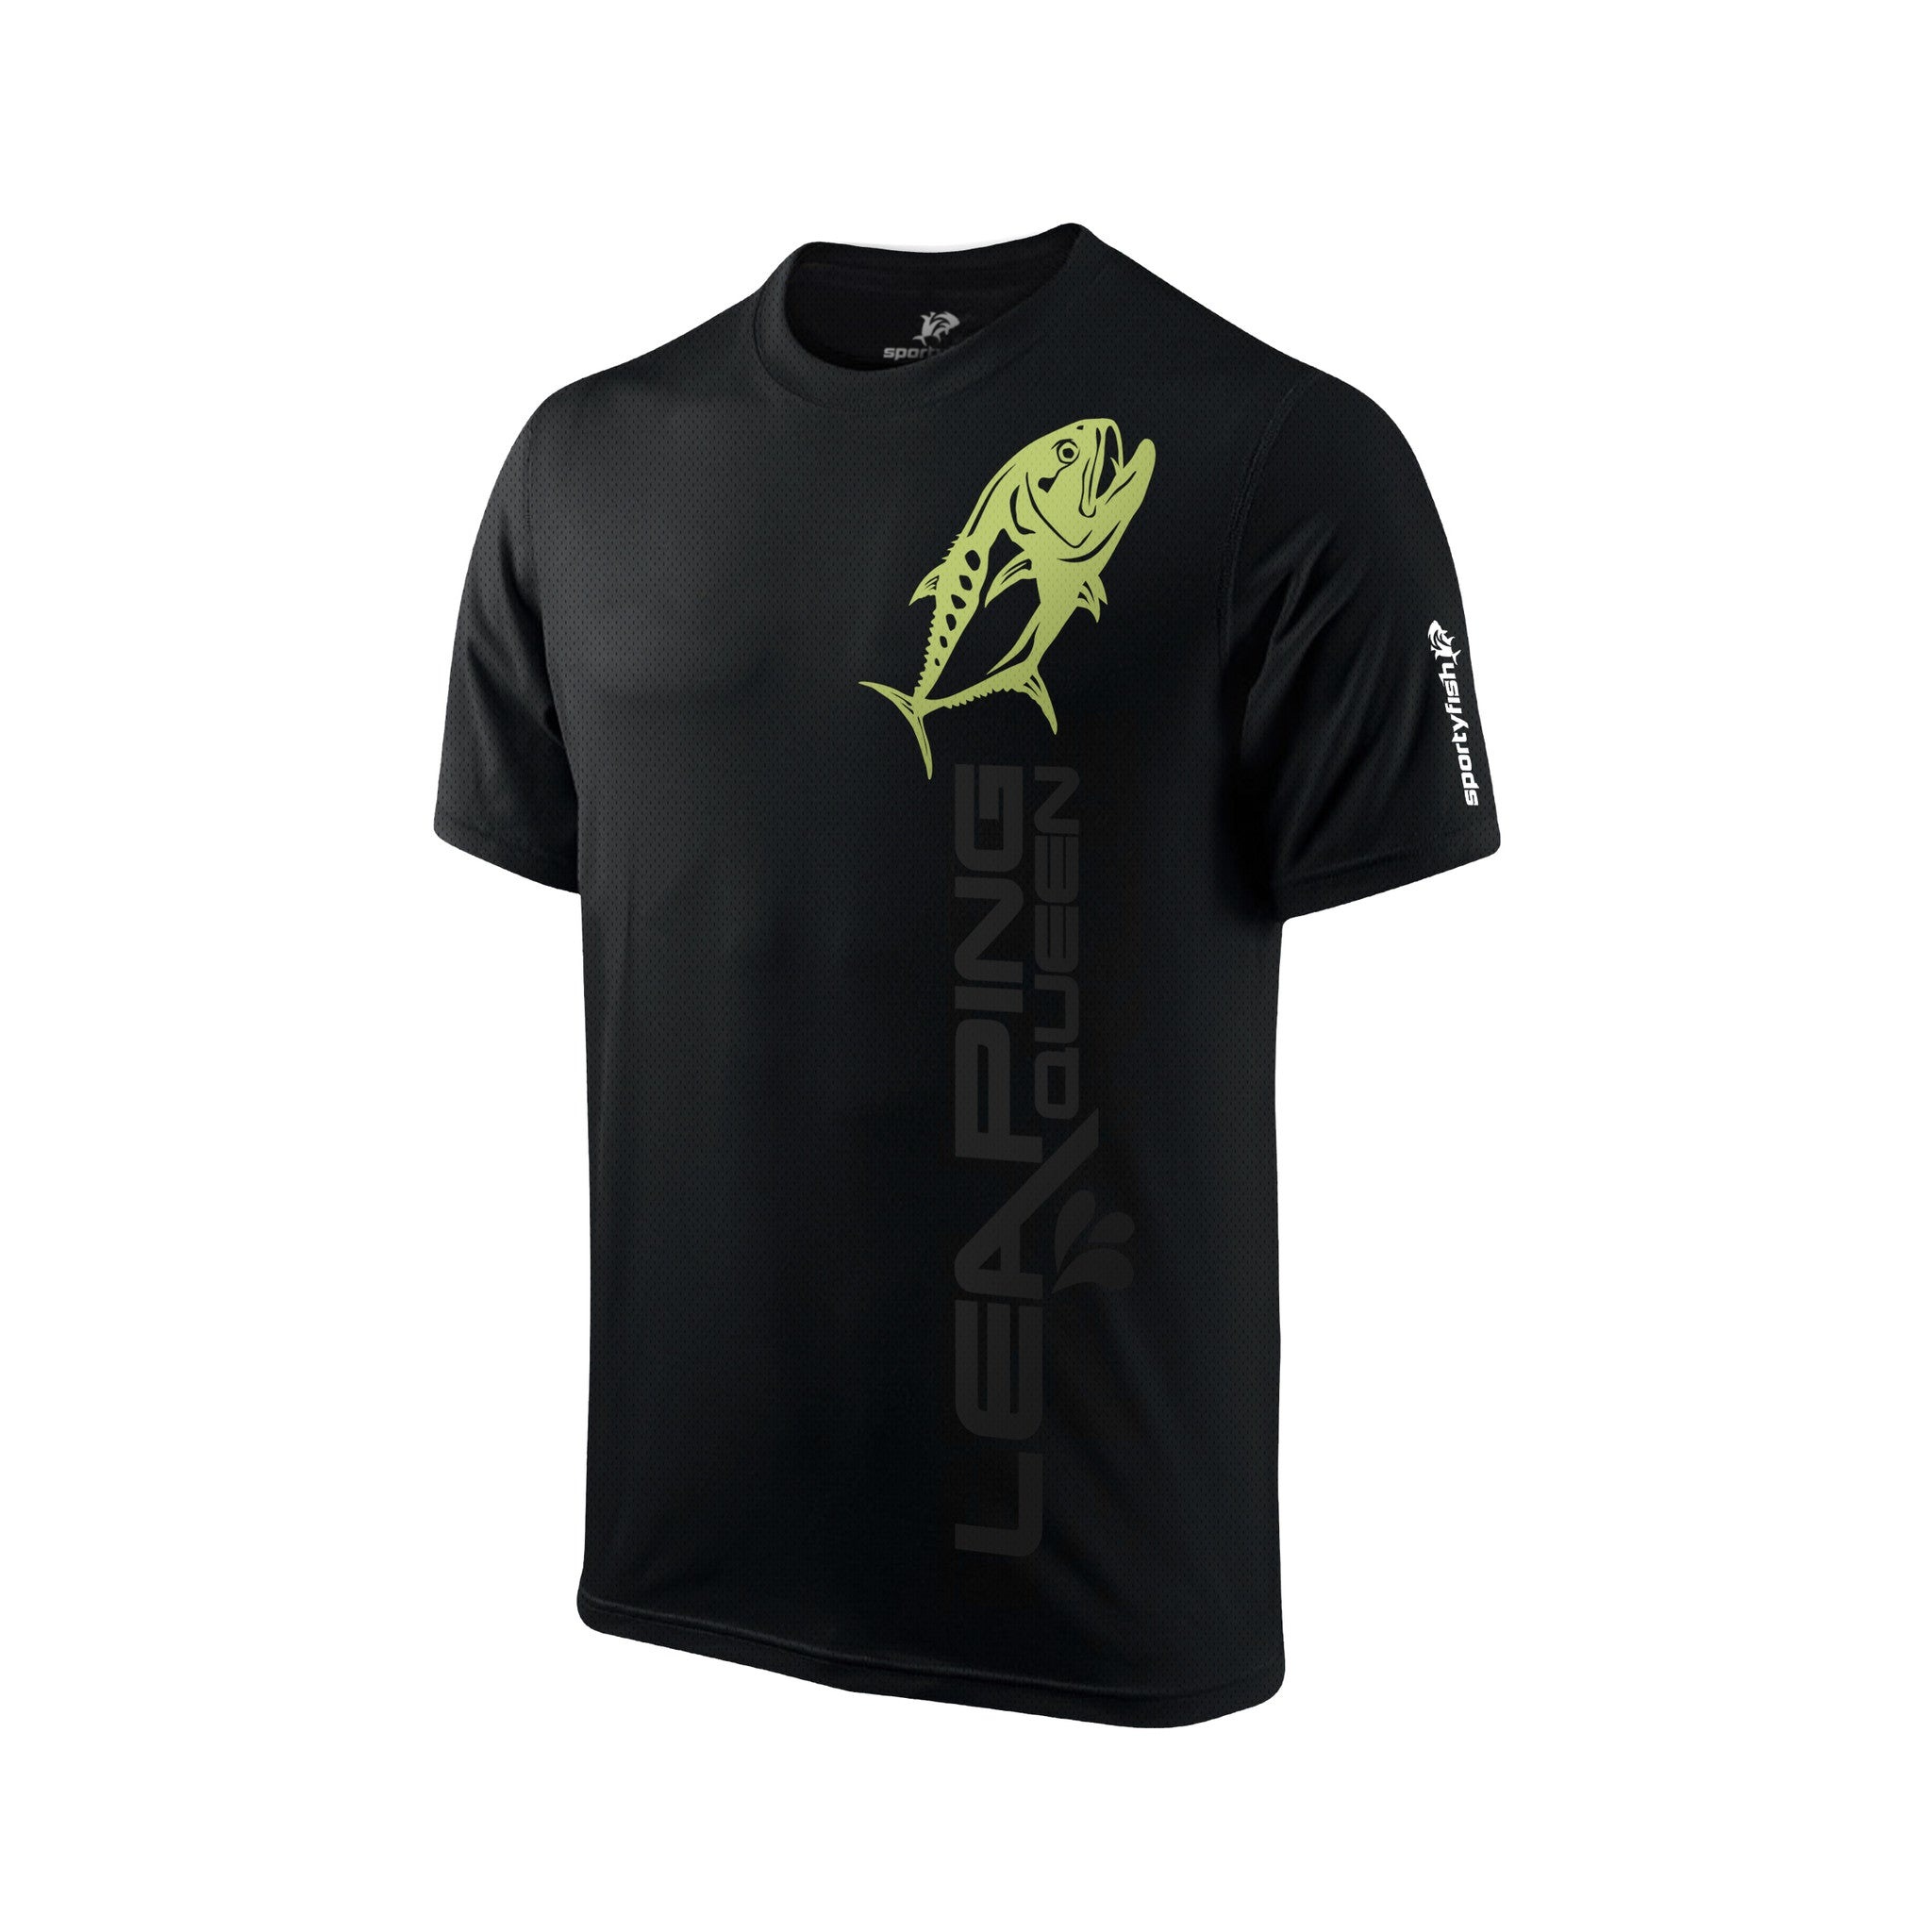 SportyFish Black Series Short-sleeves T-shirt(front view): Queenfish